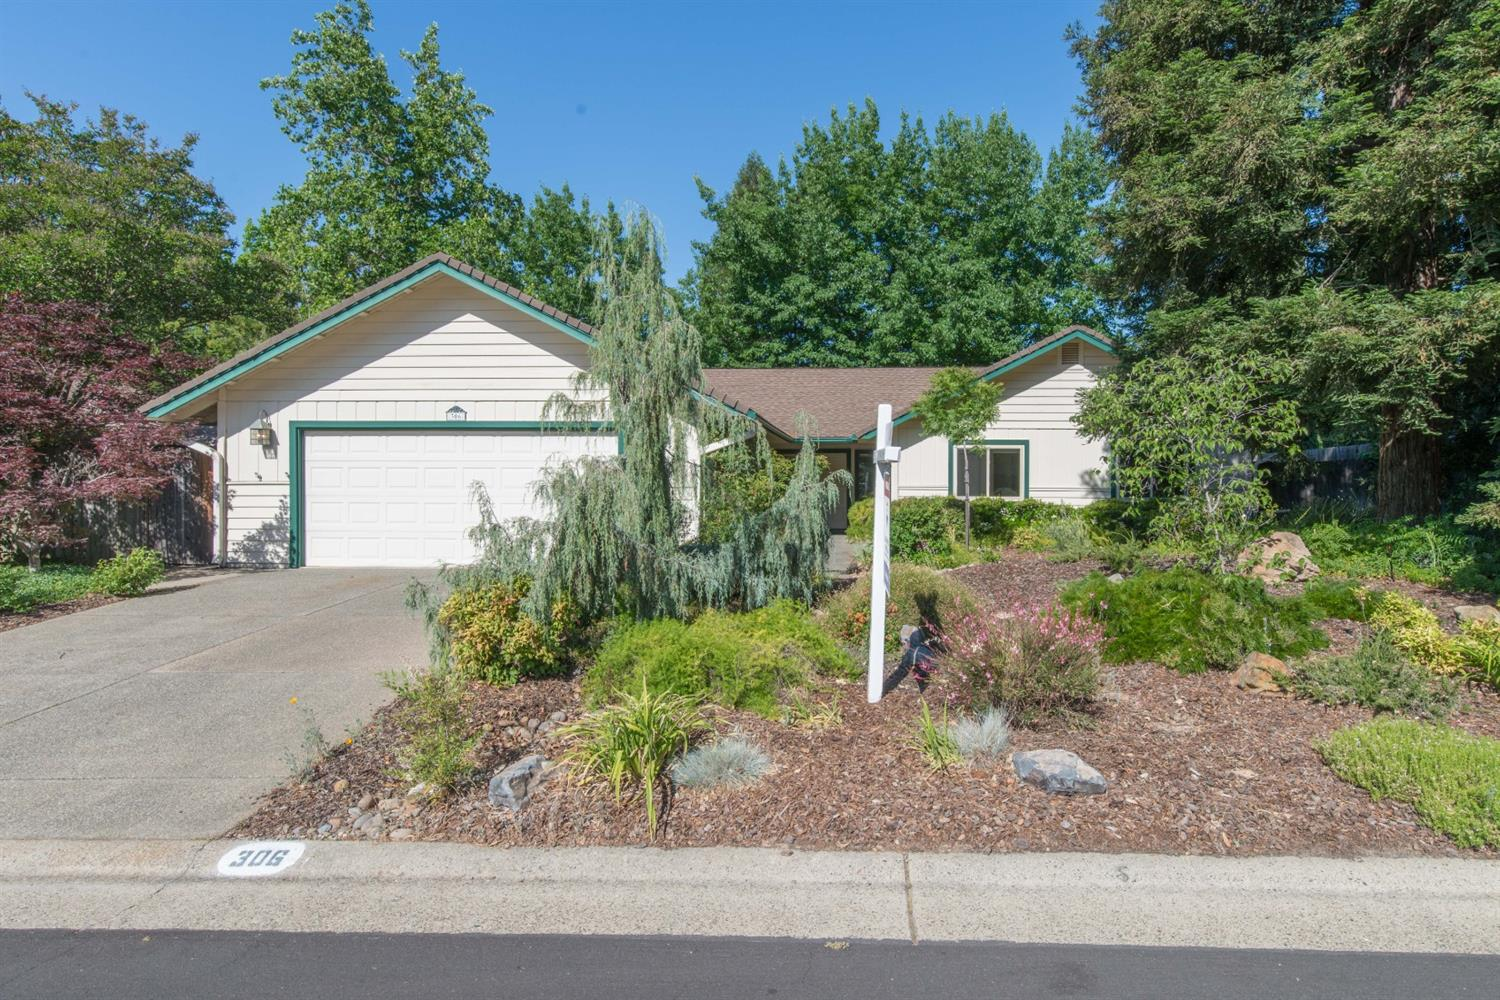 Single Story in Folsom's established & sought-after American River Canyon neighborhood! Decorated with warm earth-tones throughout, and nestled in a park-like setting, this classic home has such an inviting feel. As you walk in, you will find a sizeable living room that transitions to a formal dining area framed by an eye-catching brick wall. From there, you can enter the kitchen directly, or pass into the daily dining area and cozy family room fitted with a pellet stove, and a gorgeous vaulted wood ceiling and skylights. The well-appointed, well-lit kitchen has several points of interest: peninsula, garden window, and glass-inlayed upper cabinets. At the opposite end of the home, you will find 2 spare beds, 1 full bath, and a large primary